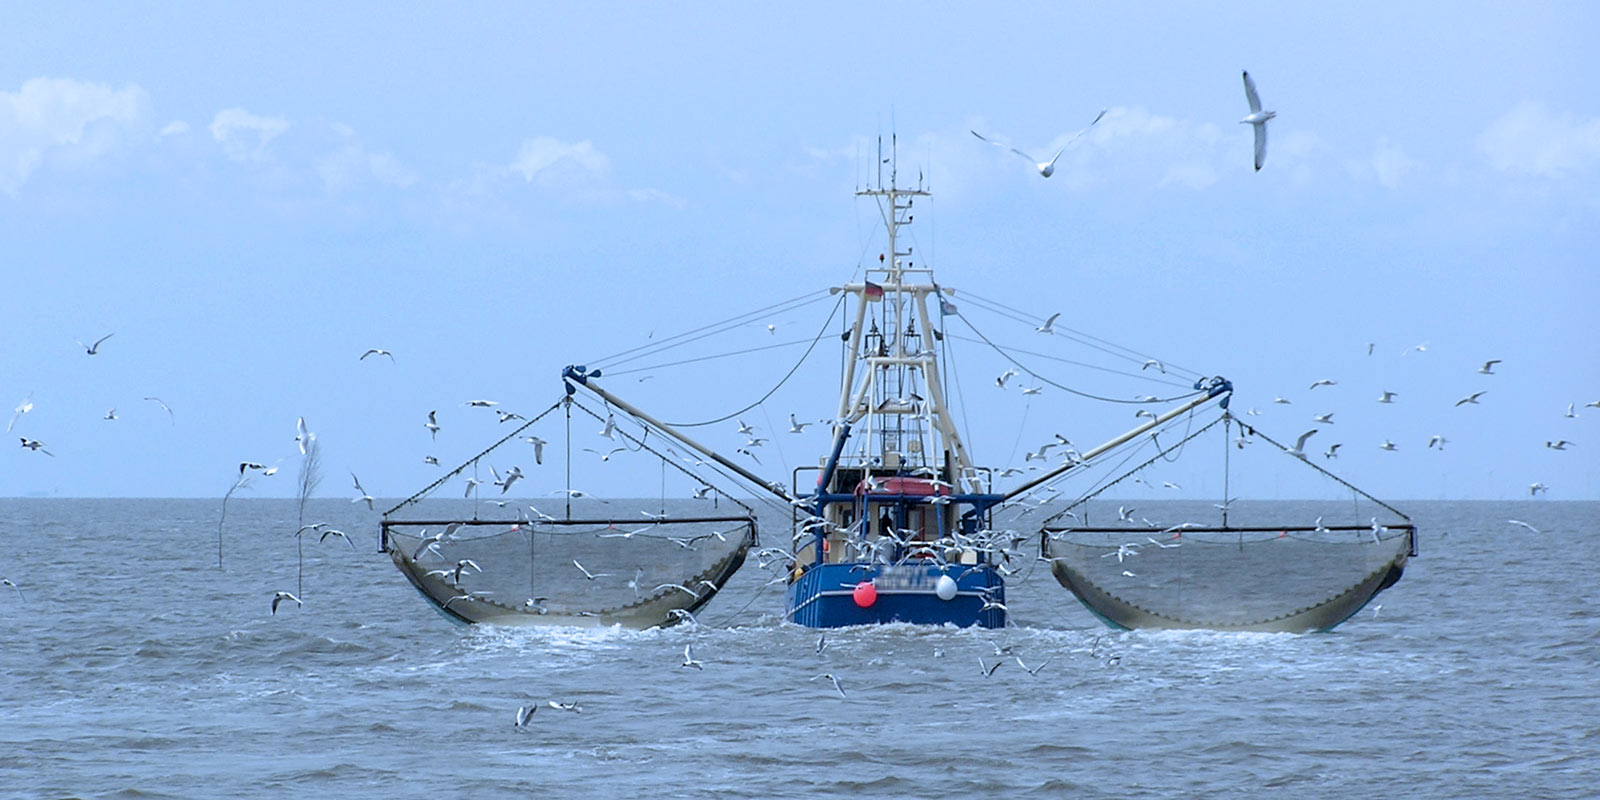 Fisheries crime threatens food security